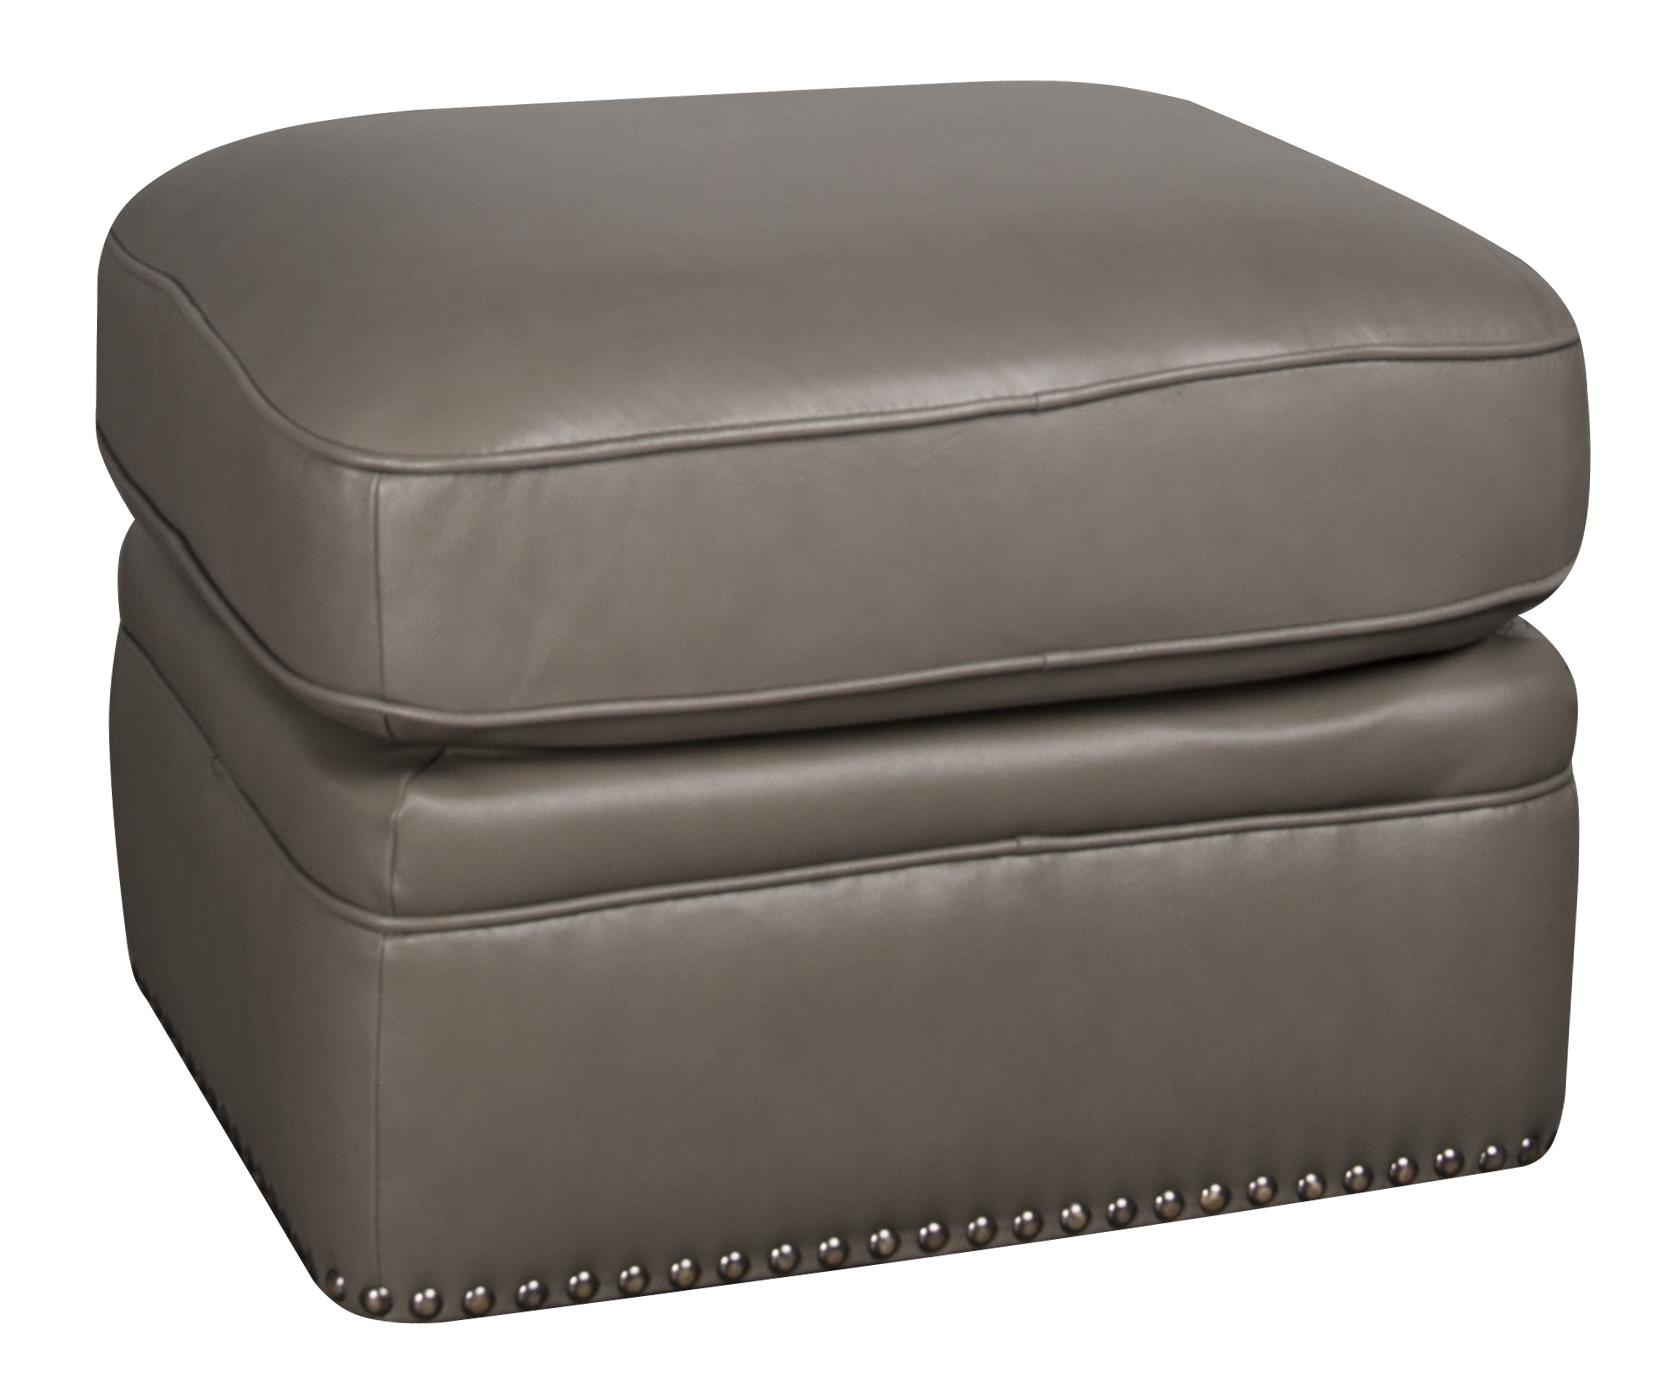 Morris Home Furnishings Maya Maya 100% Leather Ottoman - Item Number: 845350505